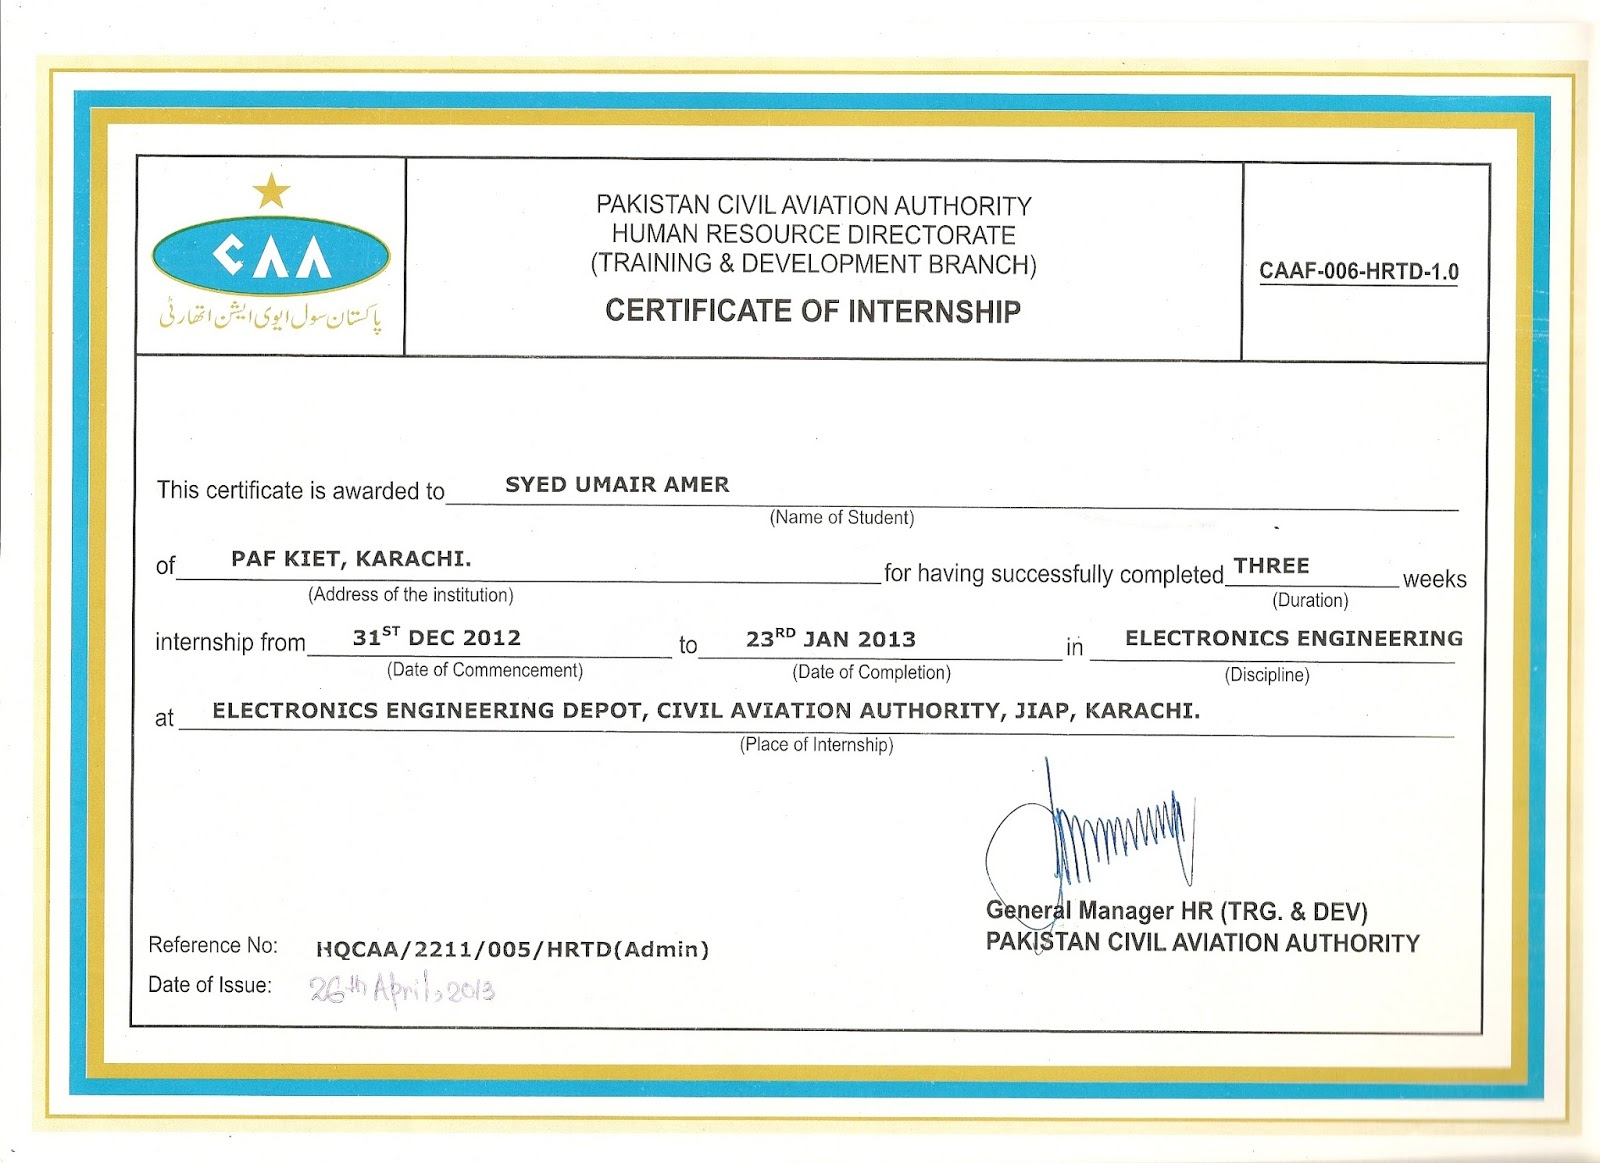 Syed umair amer certificates my certifications syed umair amer certificates 1betcityfo Image collections